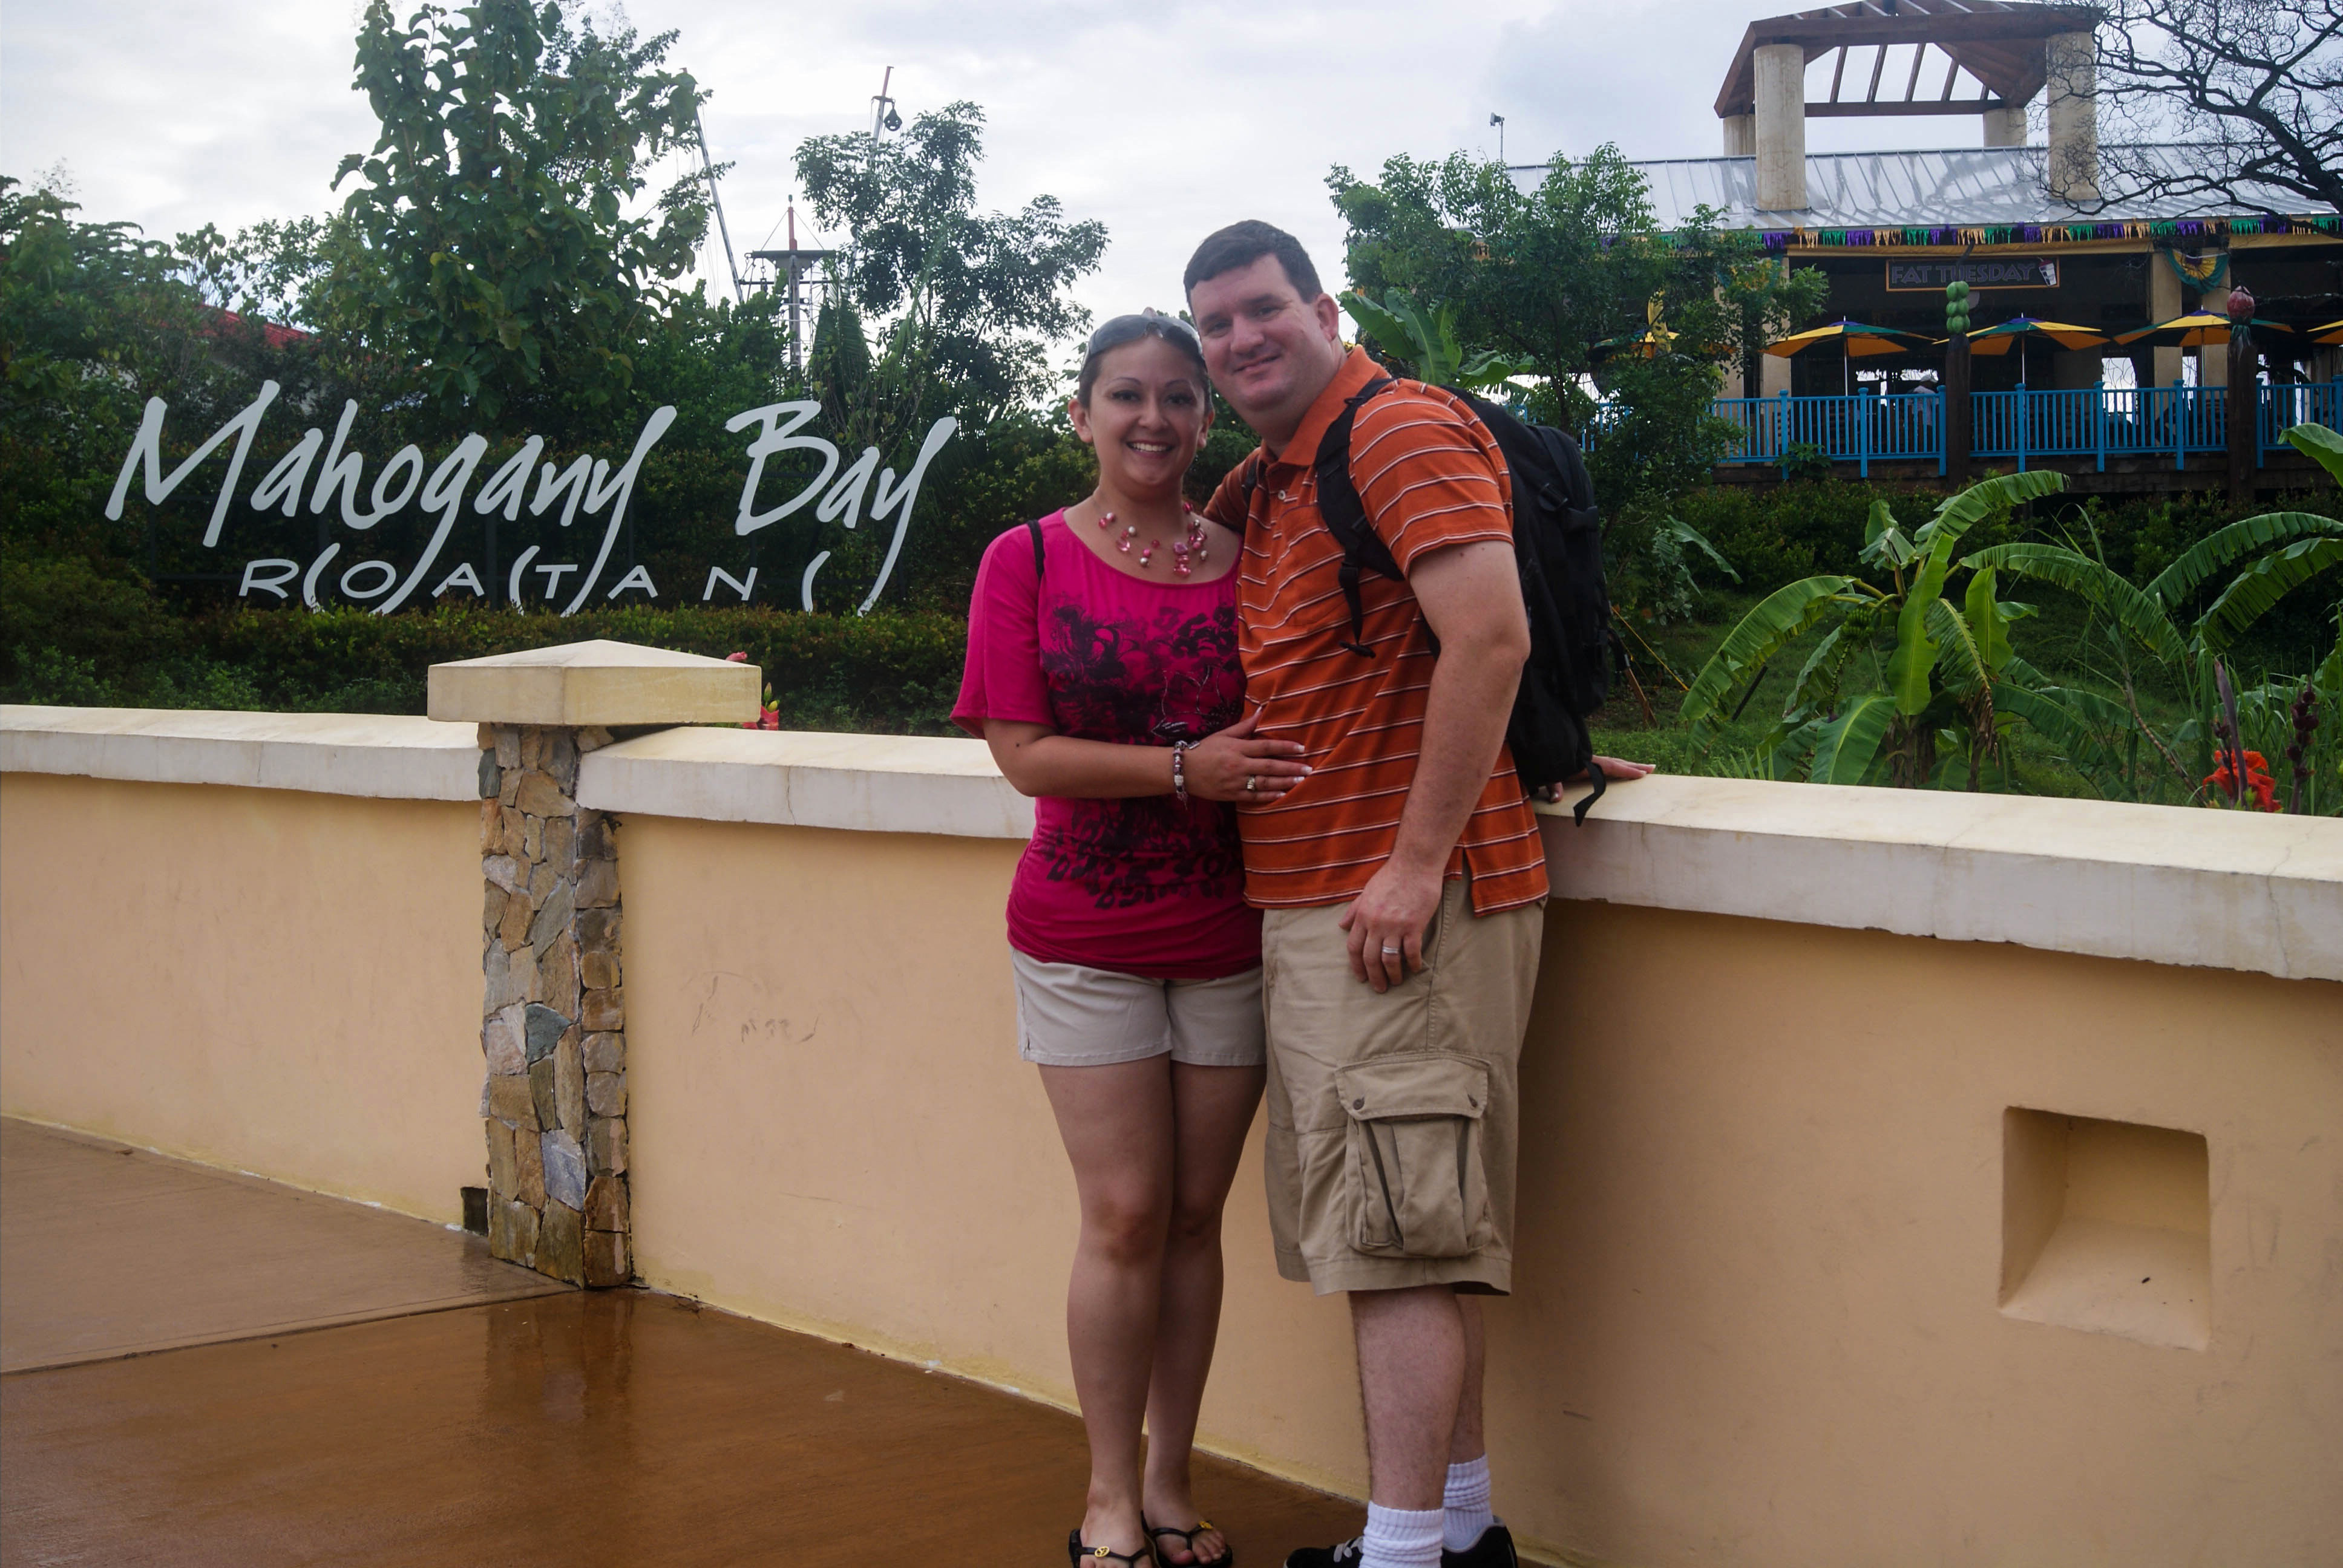 Honeymoon, Destinations, Honeymoons, Caribbean, Cruise, Western, Carnival, Honduras